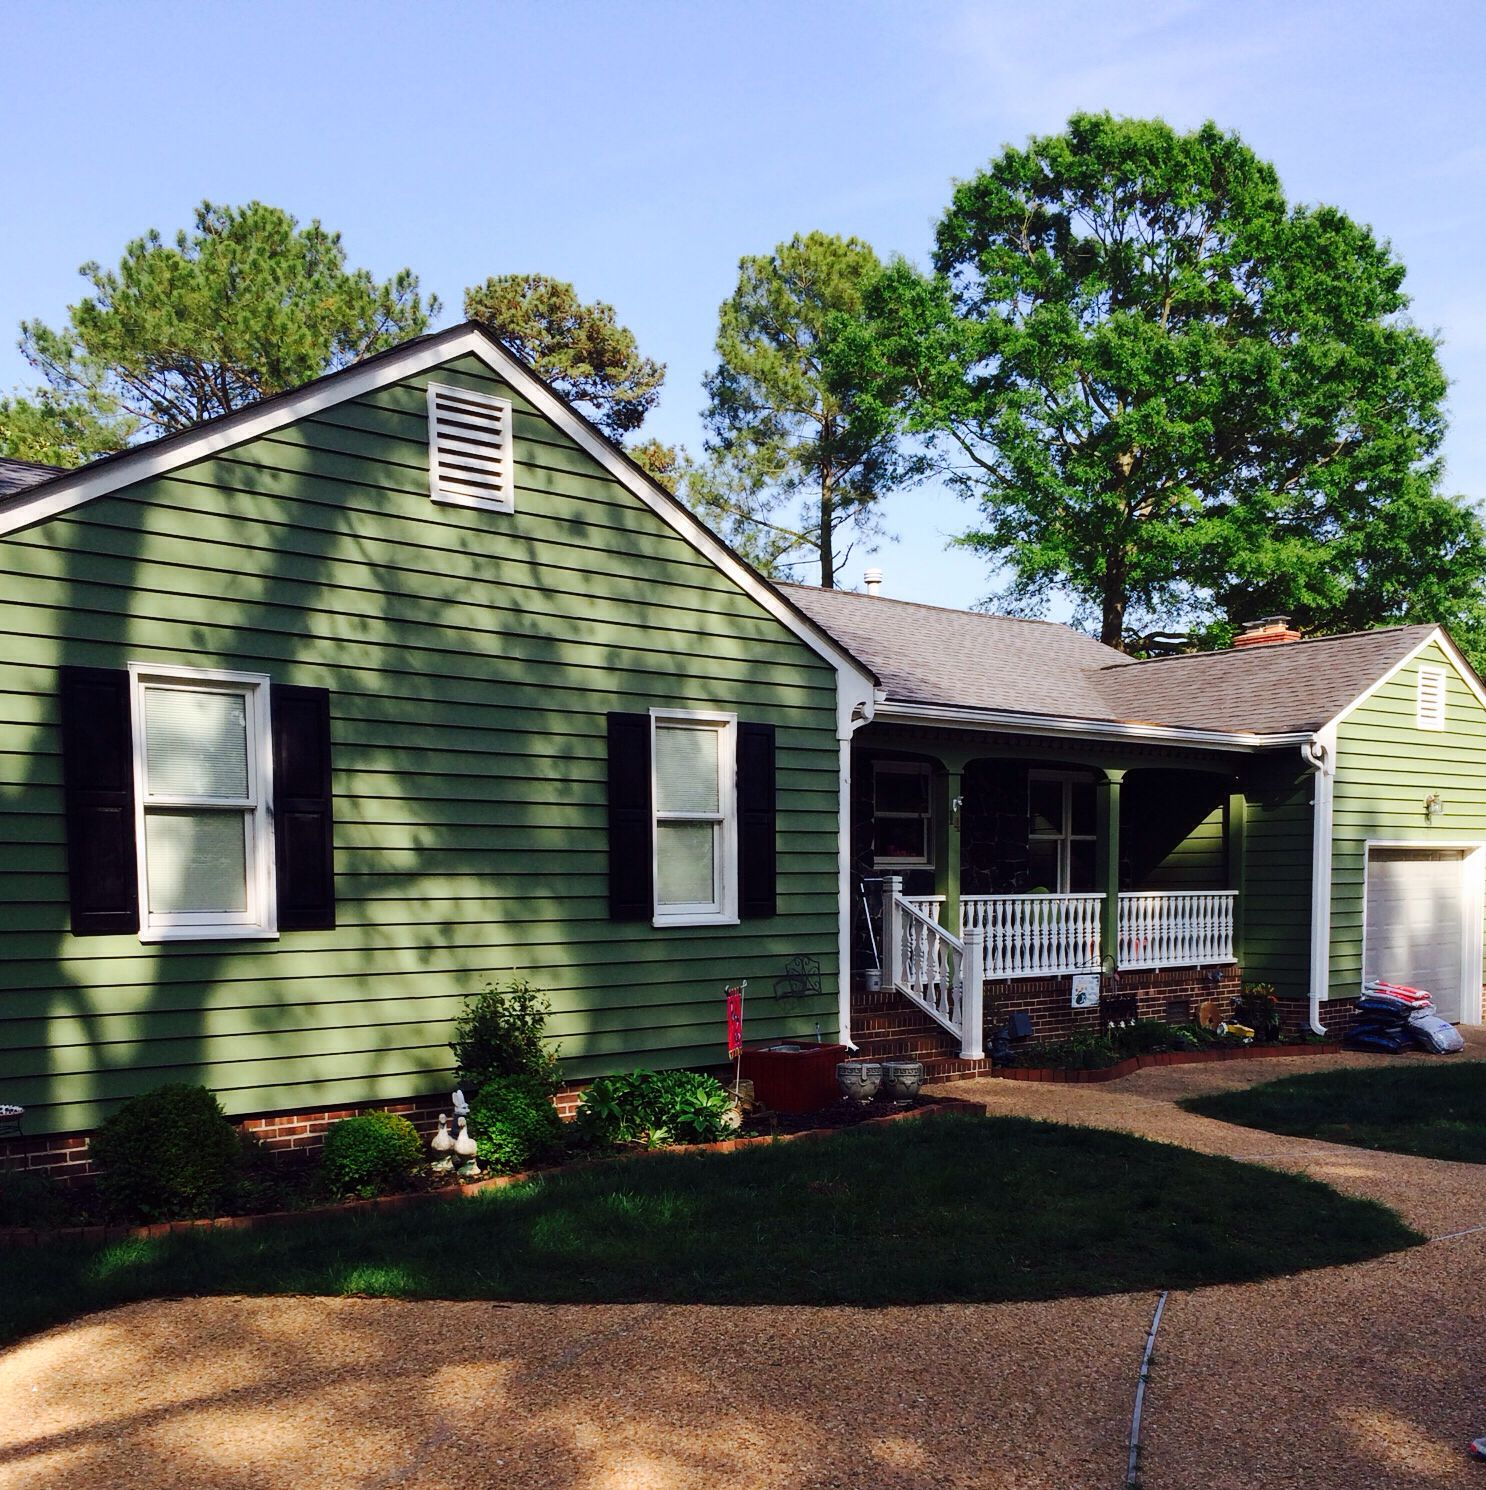 Exterior home colors green - House Painted With Sherwin Williams Artichoke Green Exterior House Color Mid Century Modern